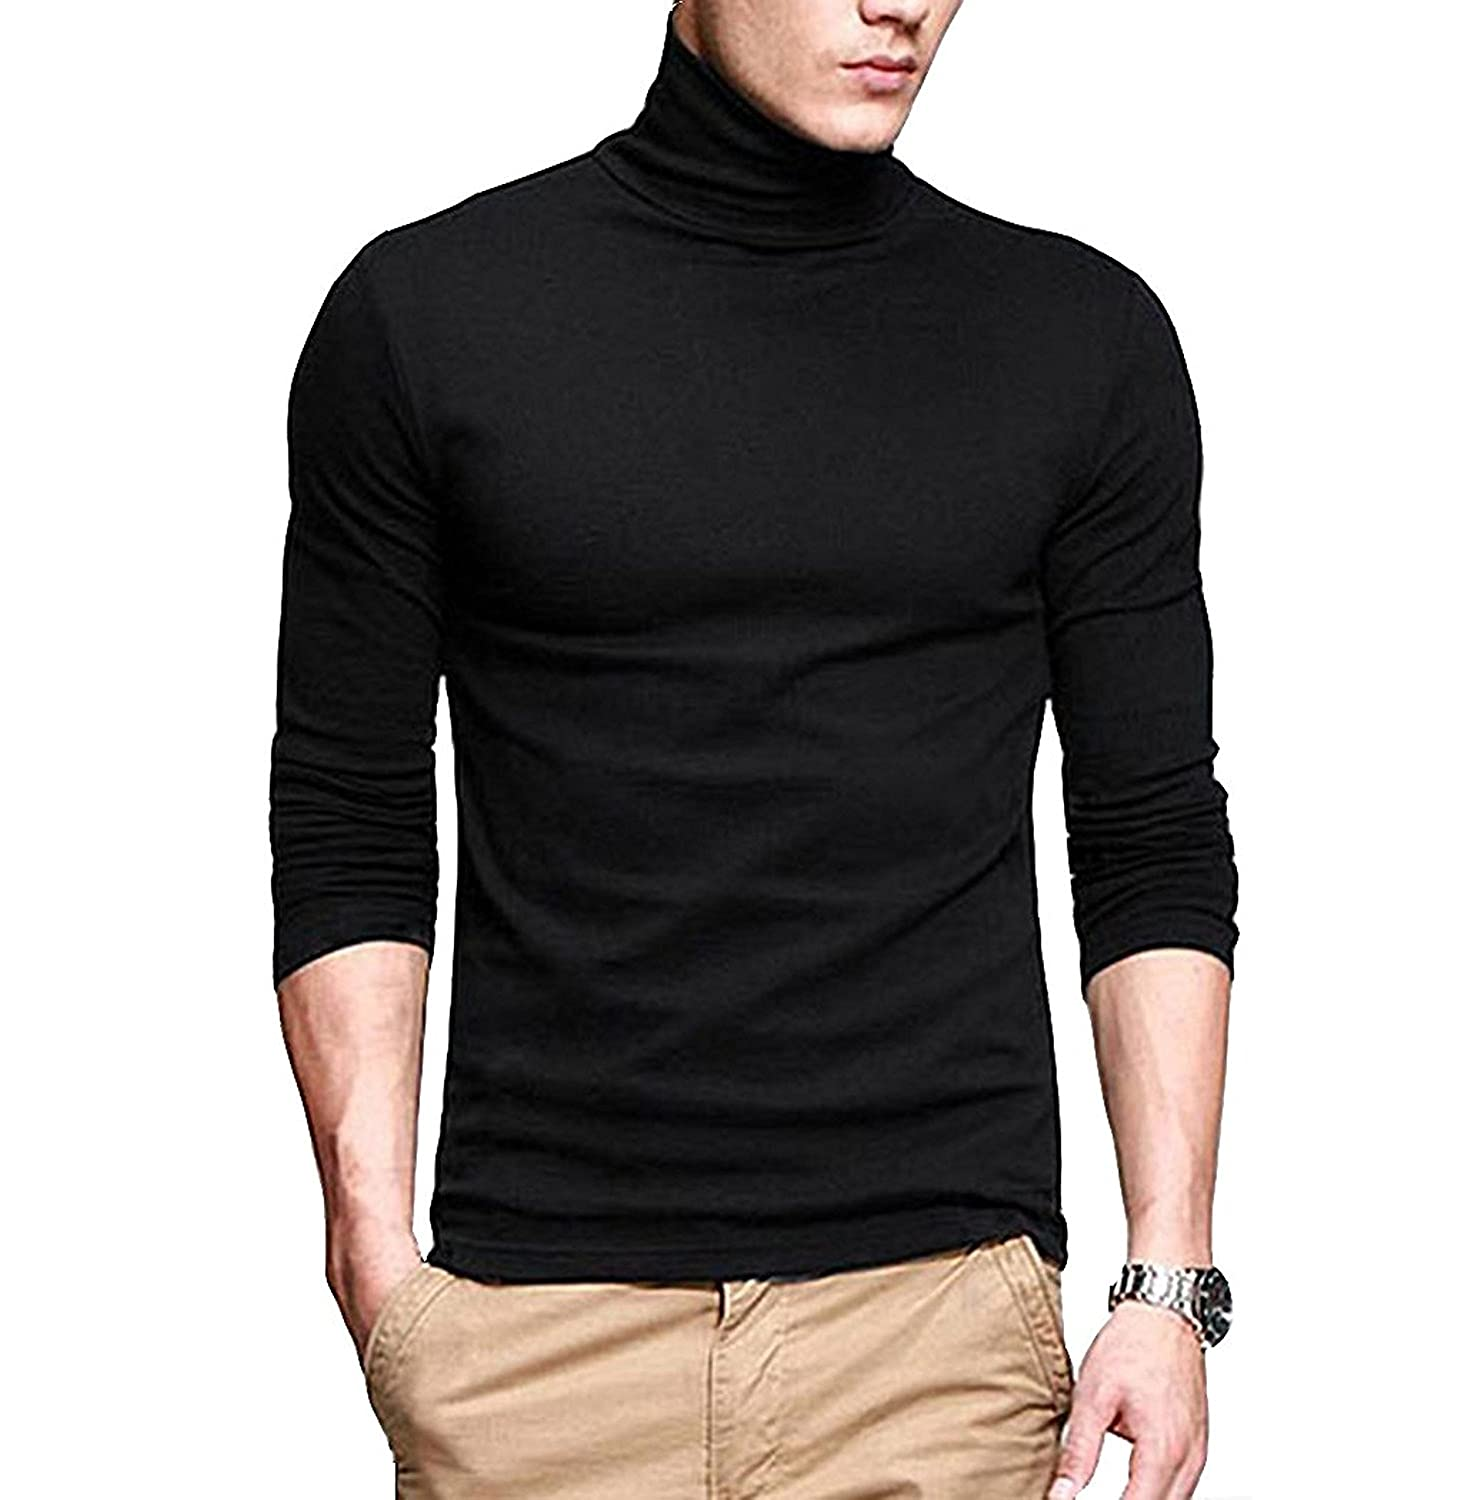 bcfccad8 PAUSE Men's High Neck Full Sleeve Neck Black Cotton T-Shirt: Amazon.in:  Clothing & Accessories